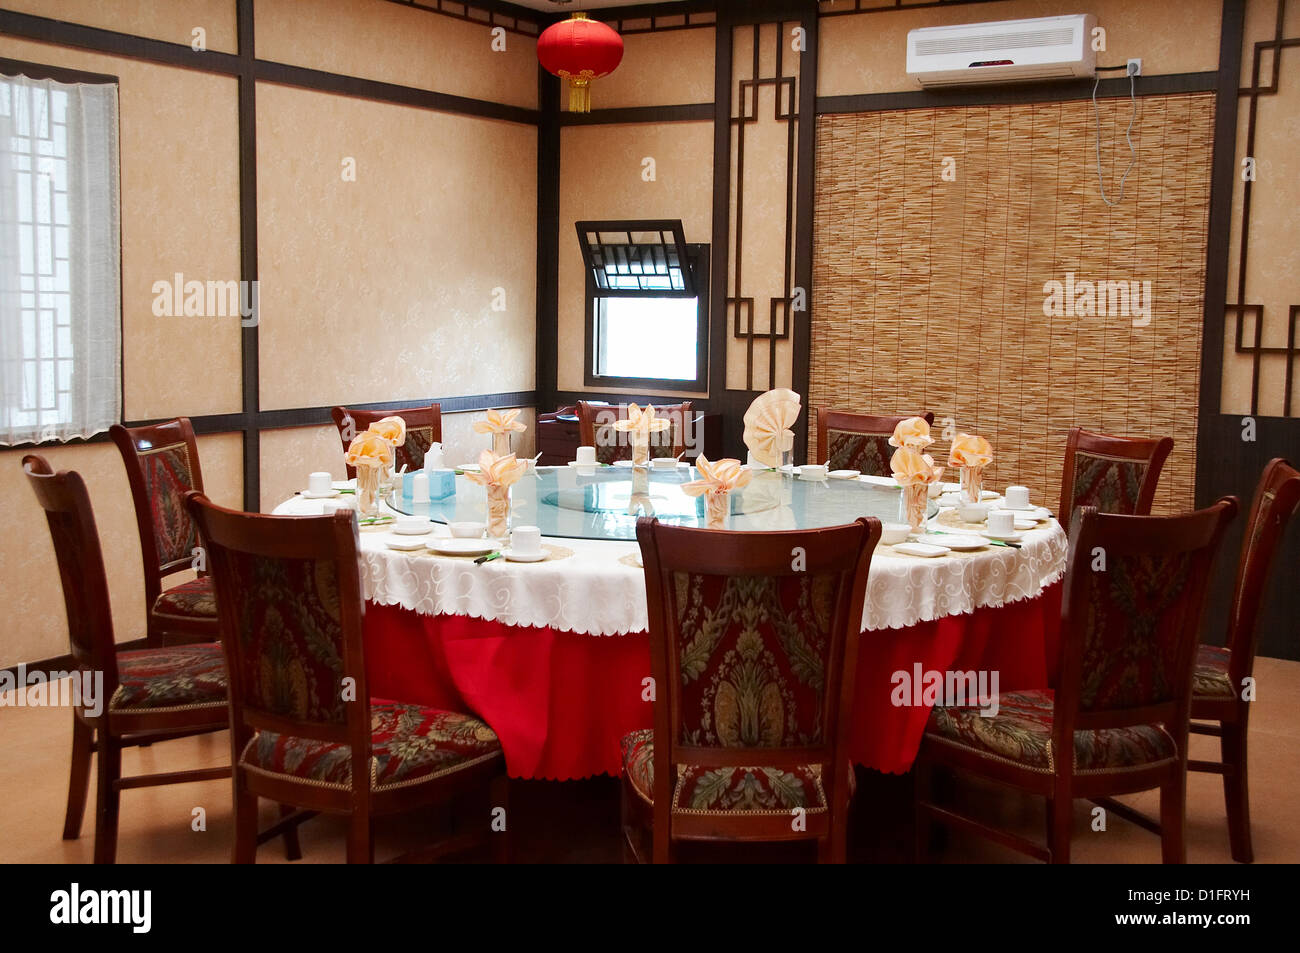 Chaise Restaurant Chinois Round Table Chinese Restaurant Photos Round Table Chinese